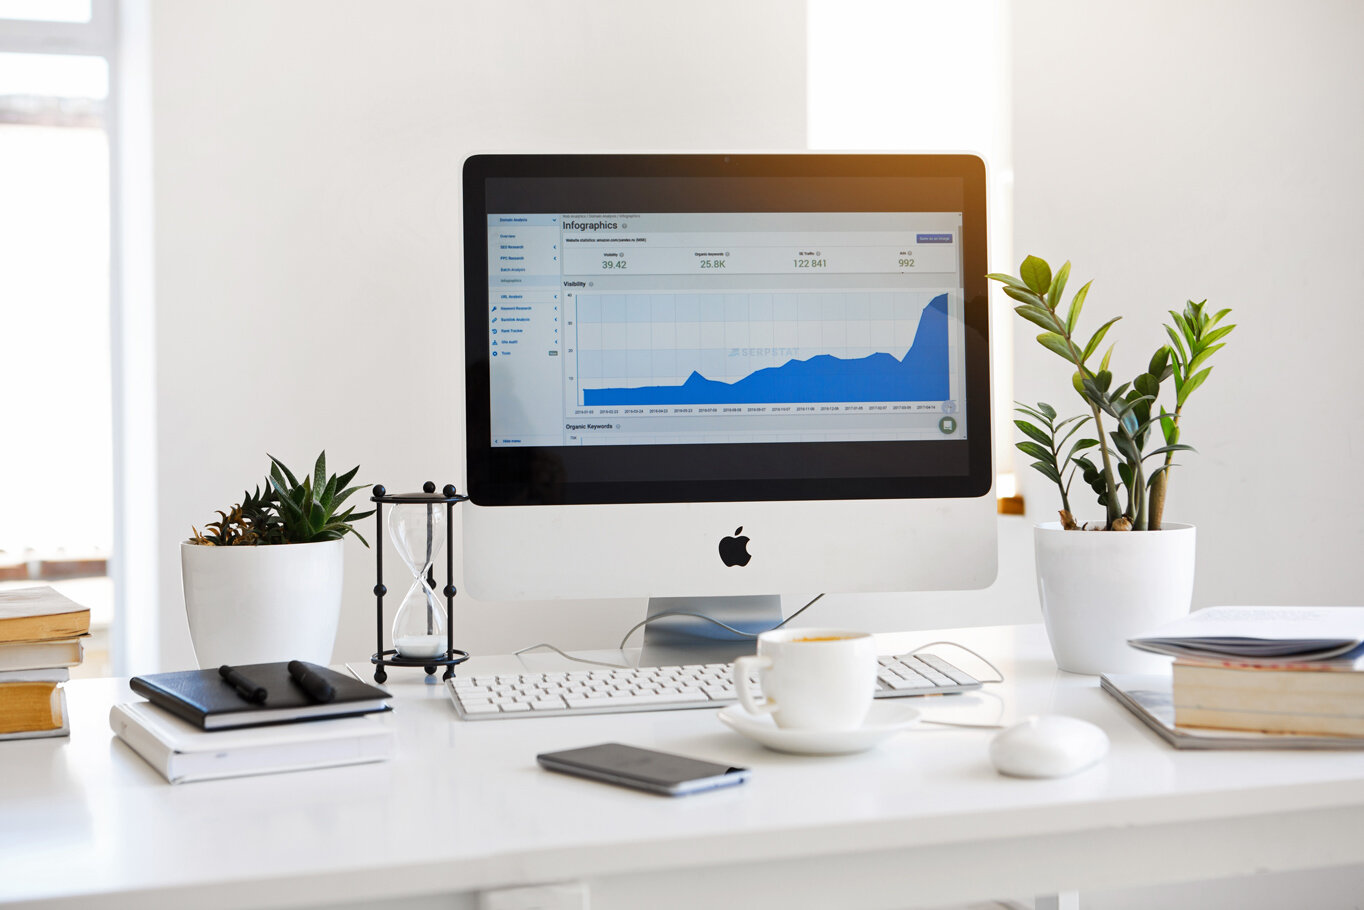 computer on a desk showing graph analytics